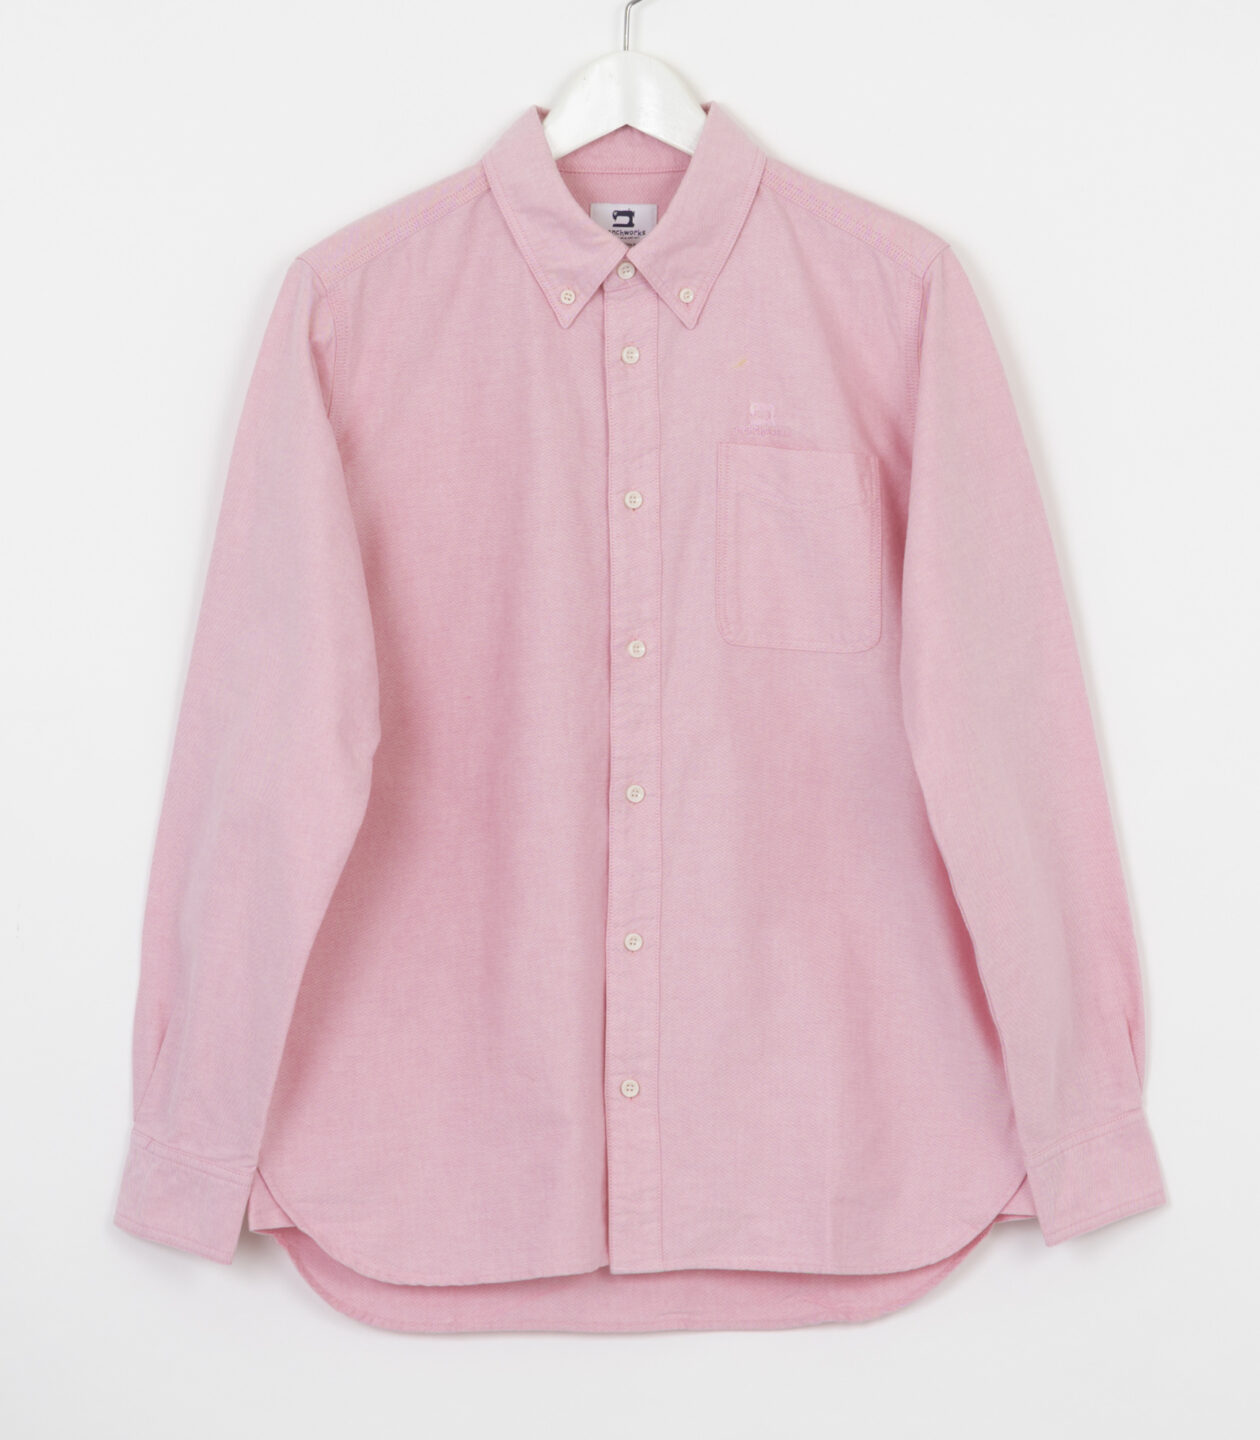 DS3-3002 pink